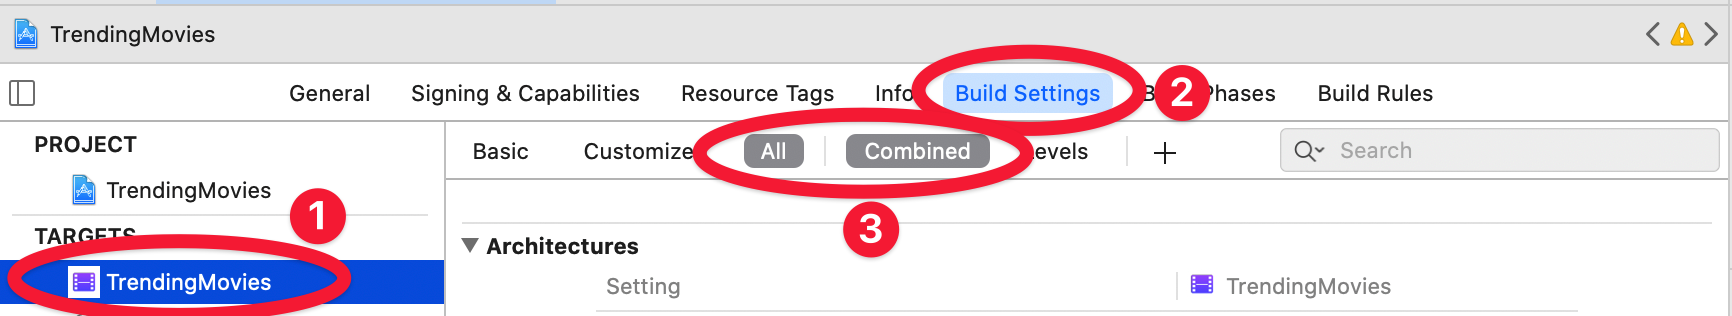 Open the Build Settings for the application target in Xcode